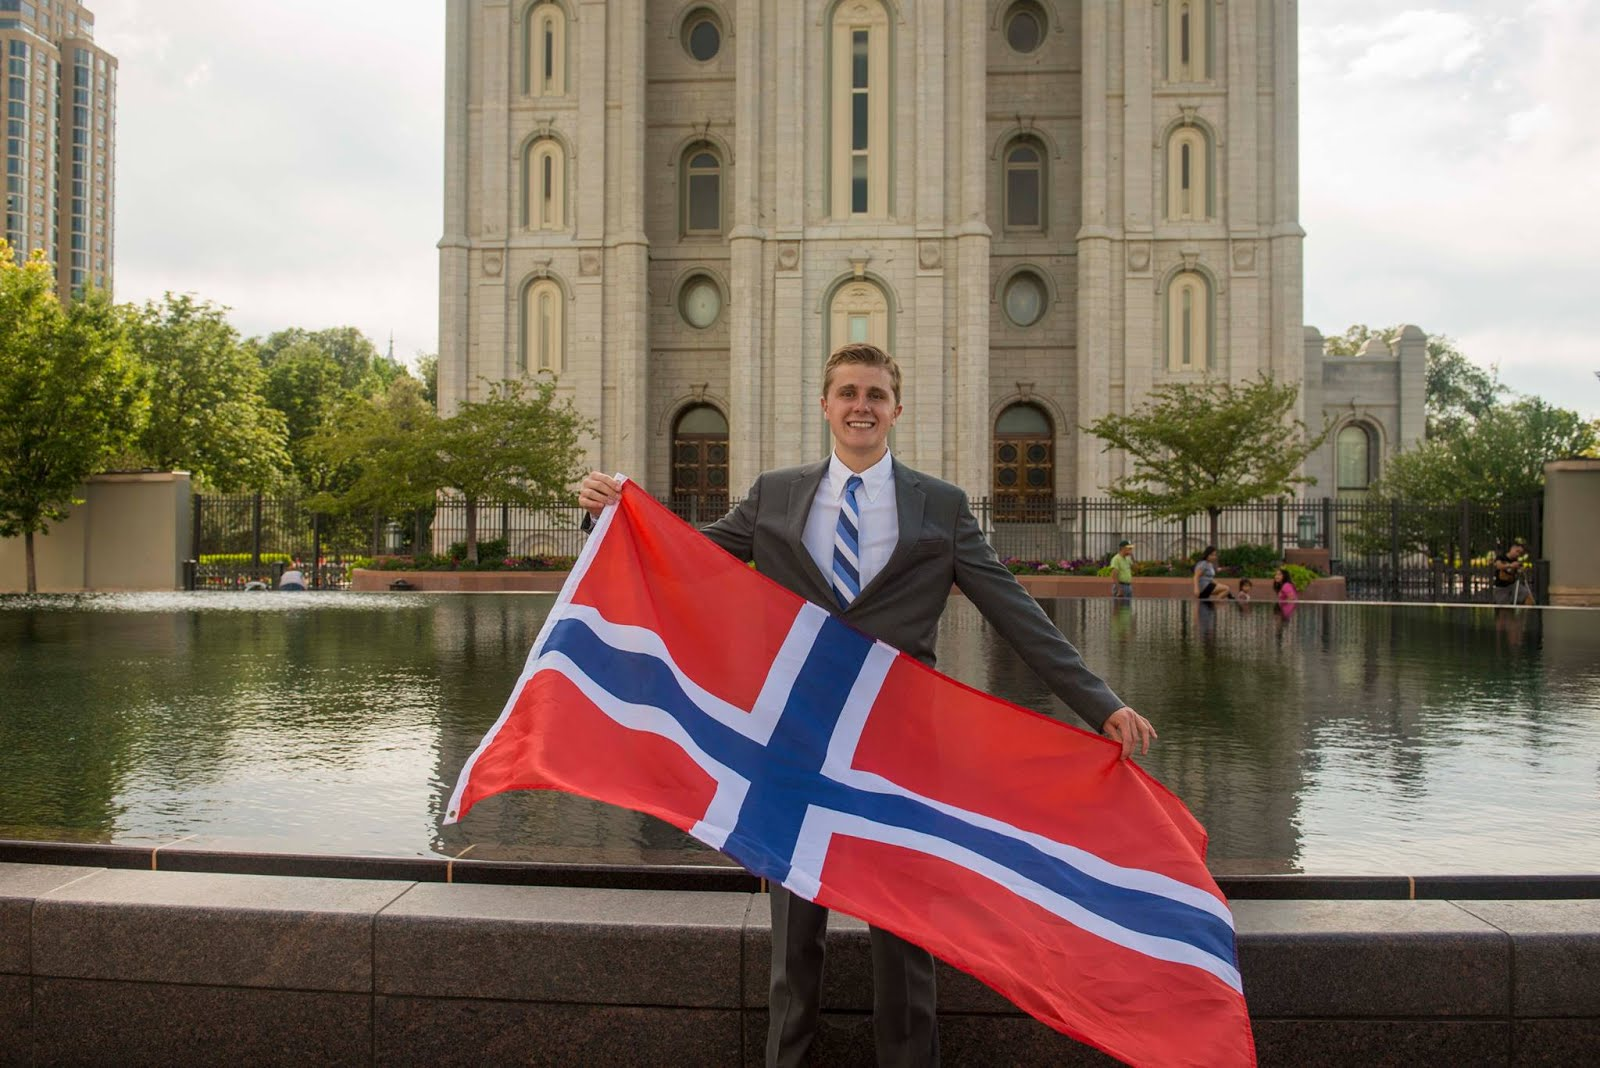 Oslo Norway Mission, Called to Serve